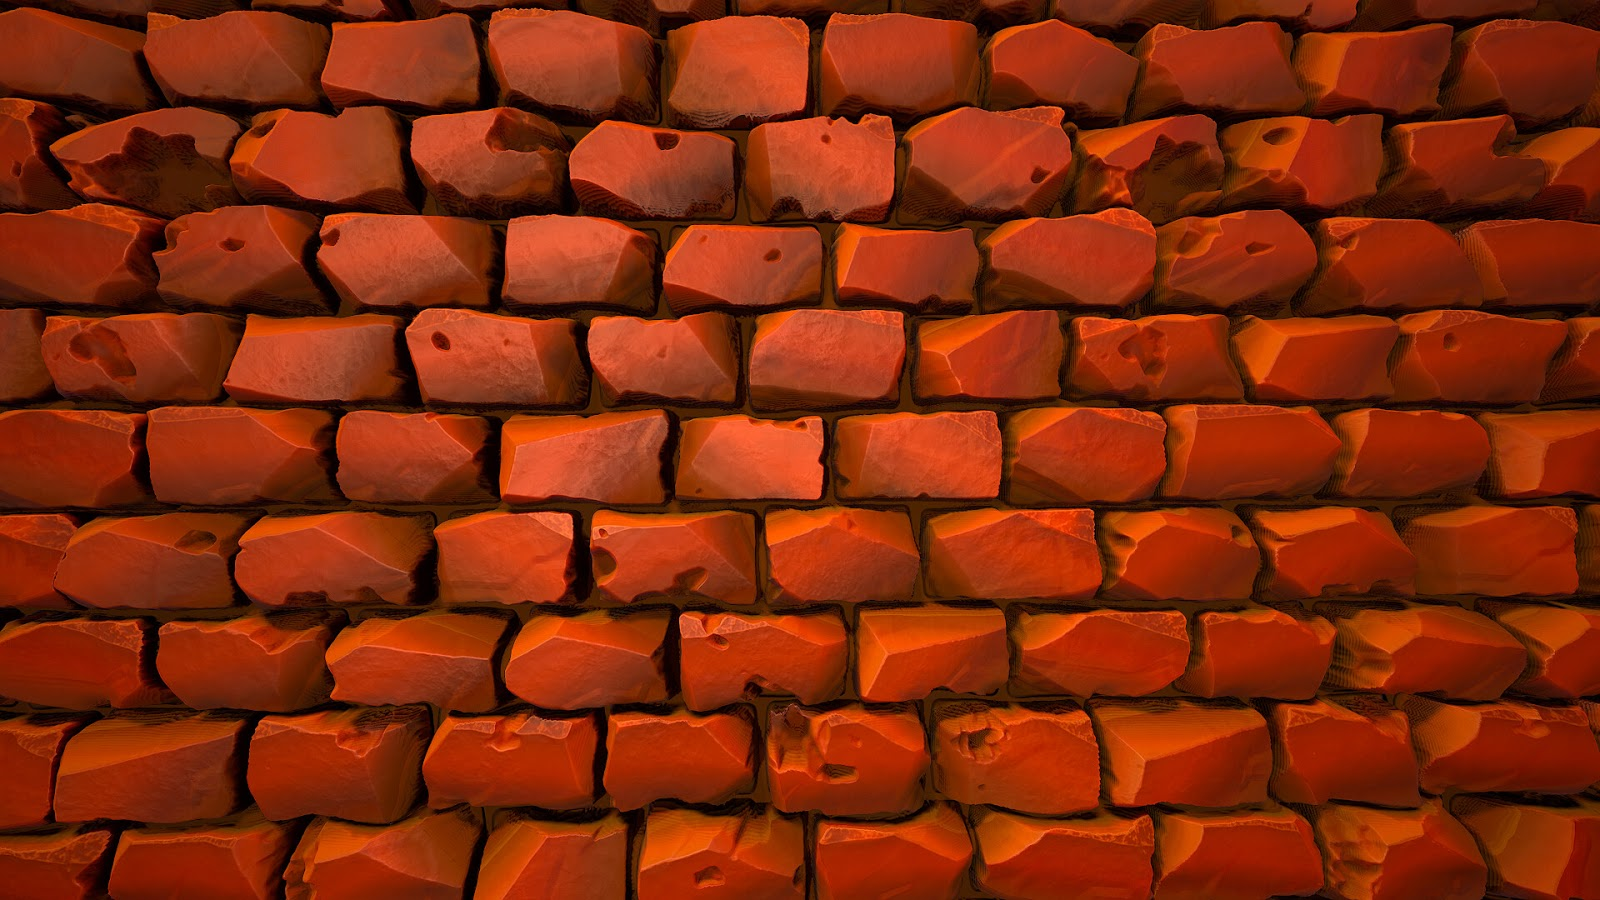 Bricks illustration to use as desktop wallpaper 1080 pixels